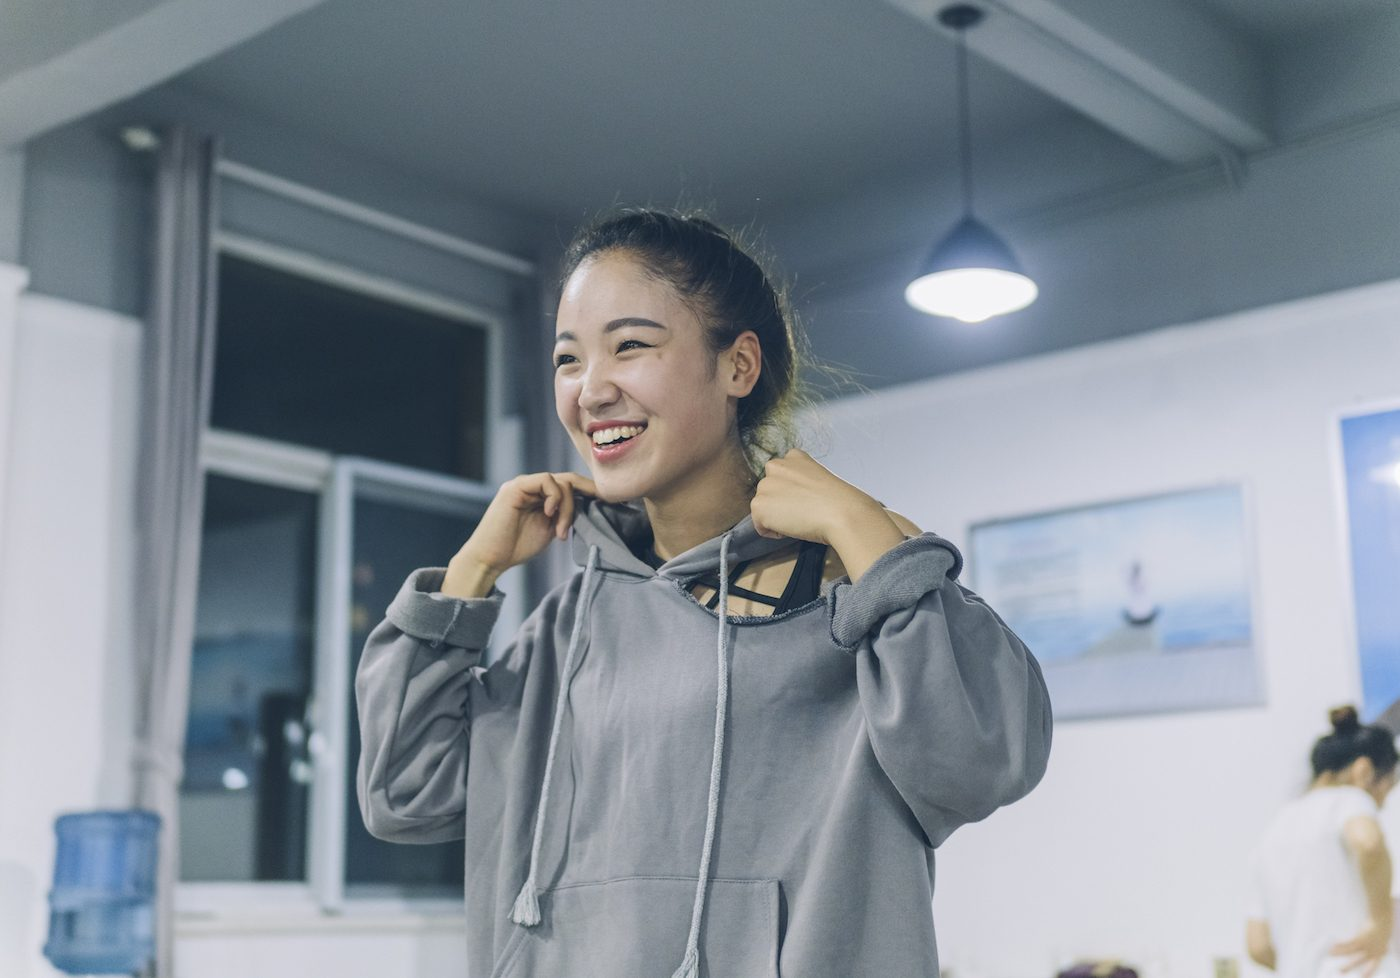 How to keep pre-workout anxiety from affecting your sweat sesh